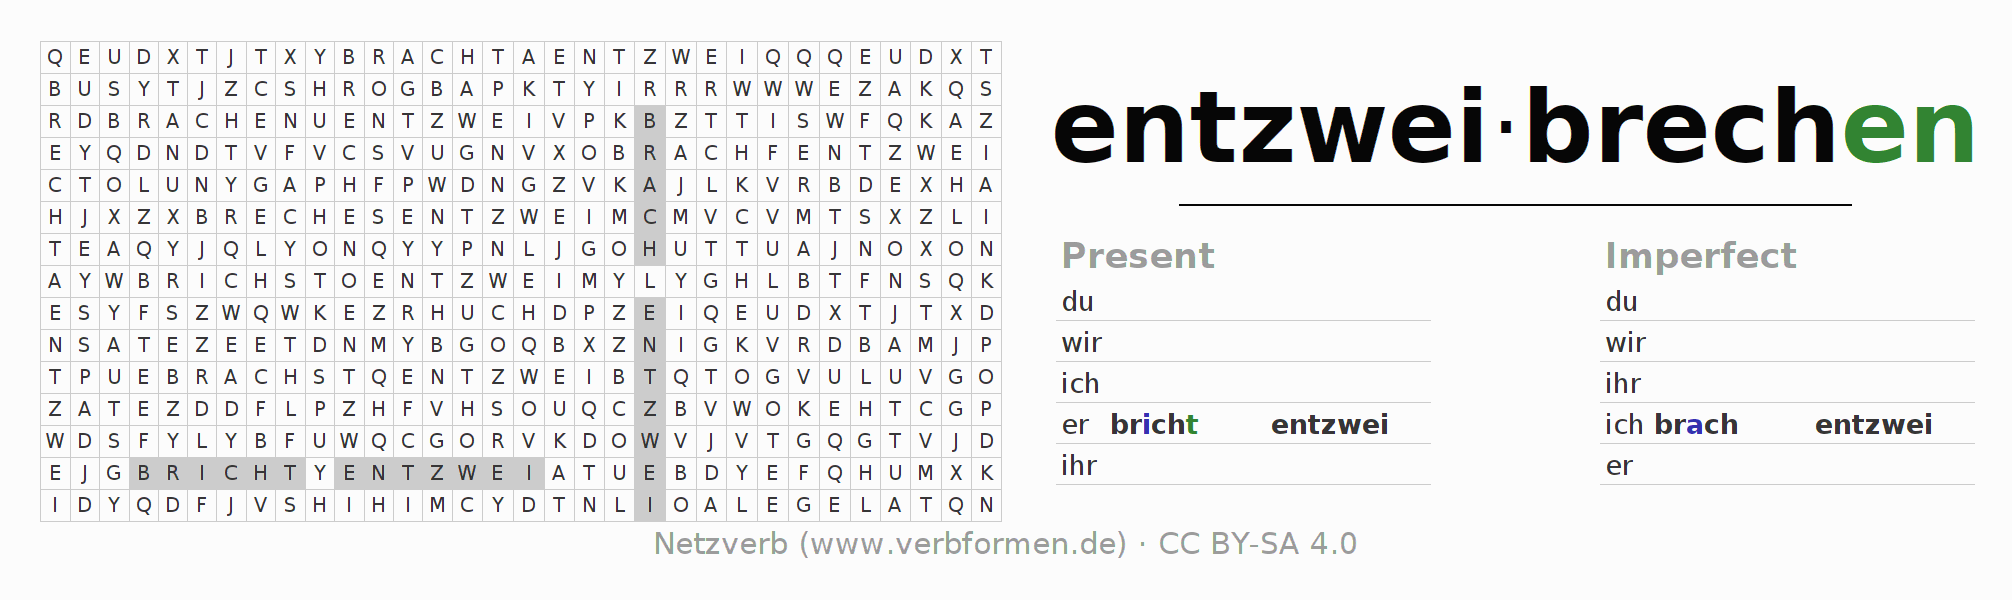 Word search puzzle for the conjugation of the verb entzweibrechen (hat)